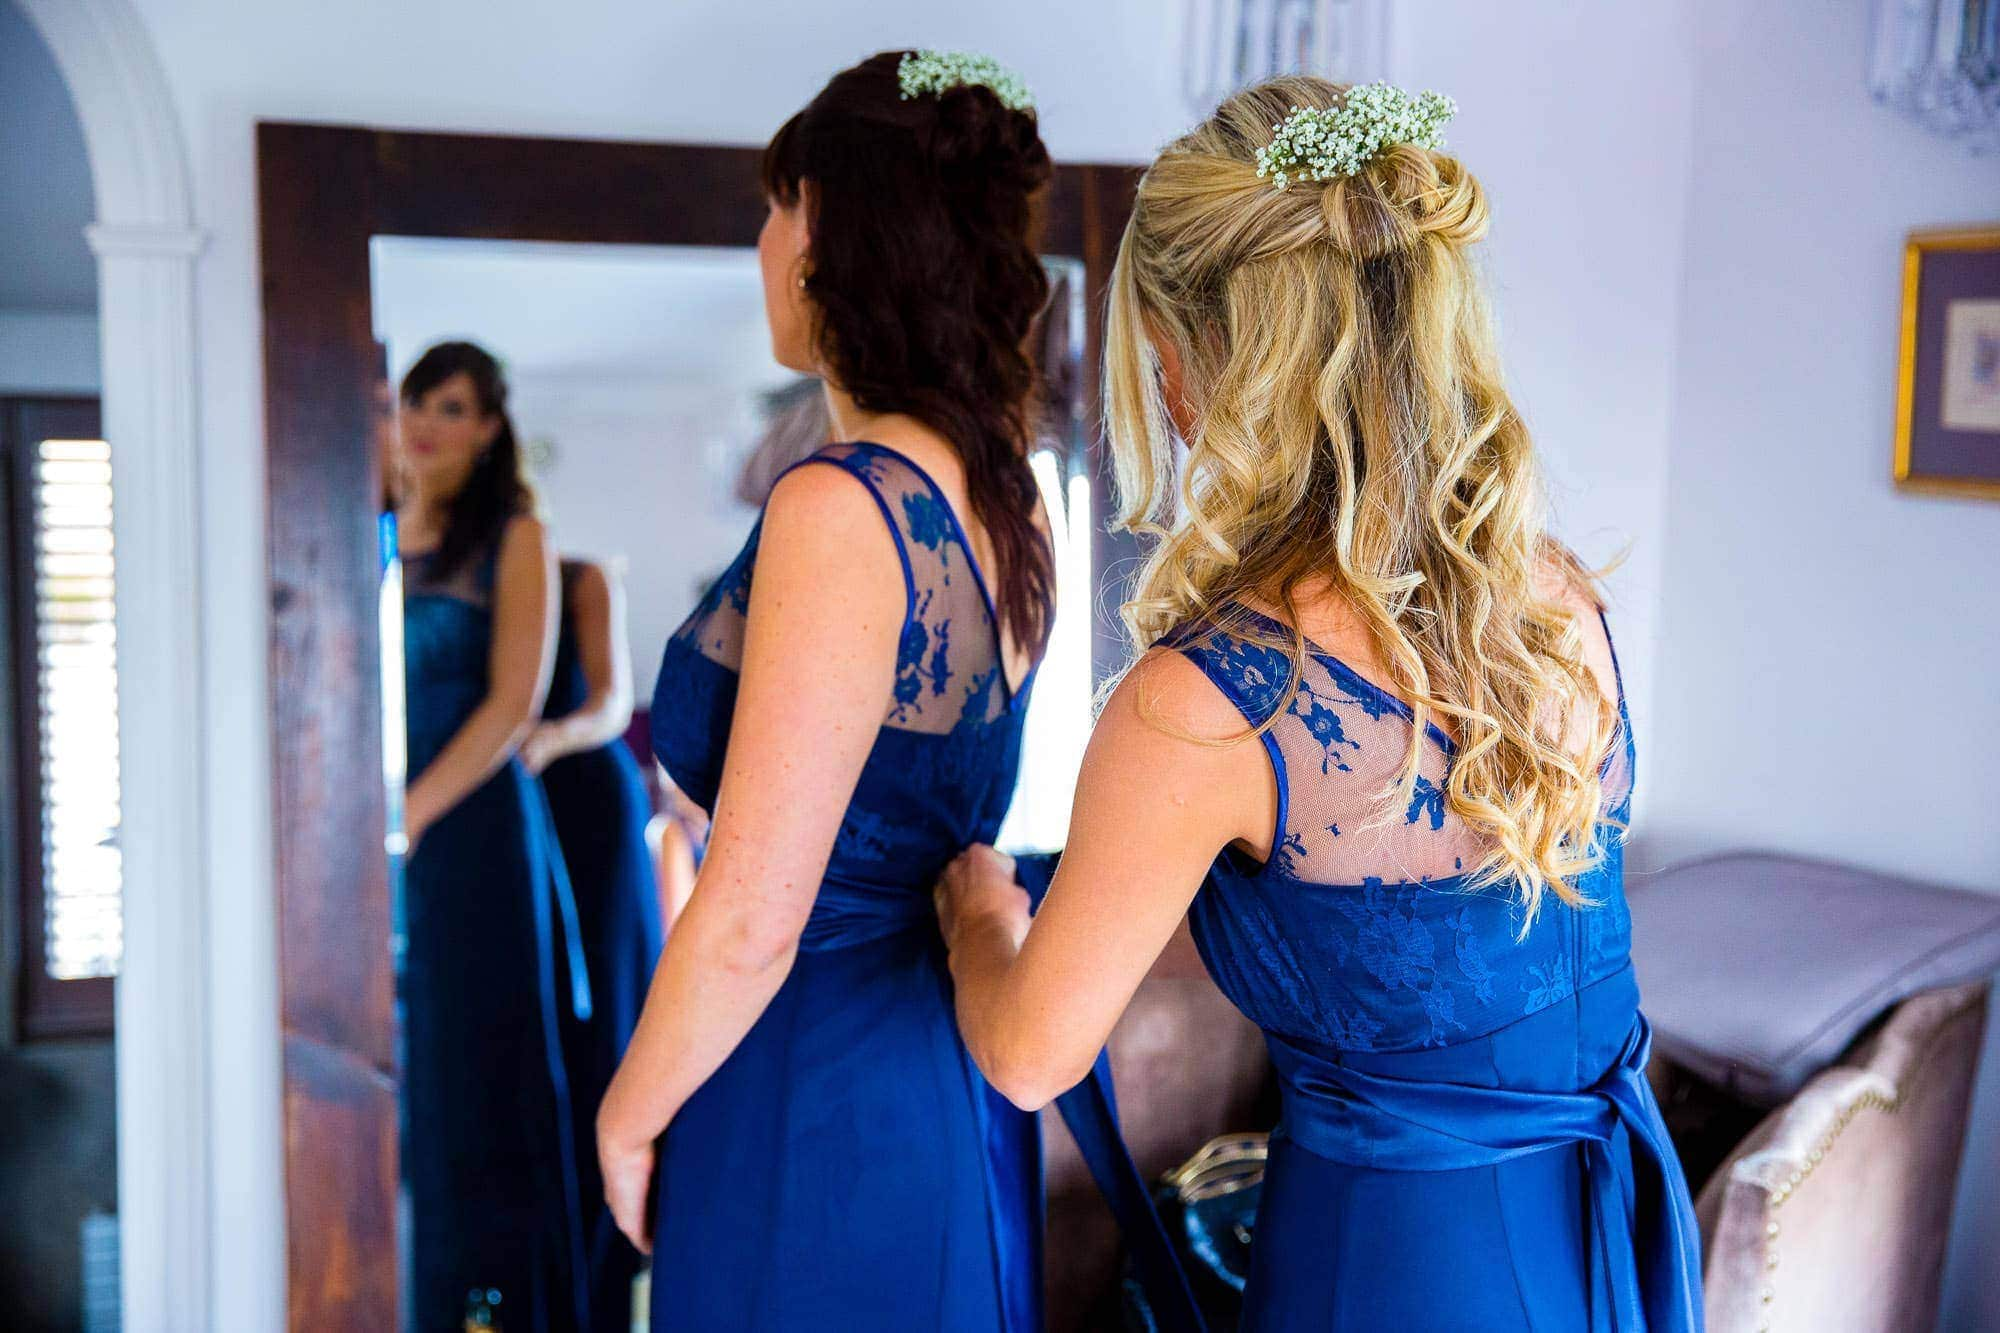 Blue Bridesmaid dresses with lace detail Bridal Preparation at Russets Country House Wedding Venue